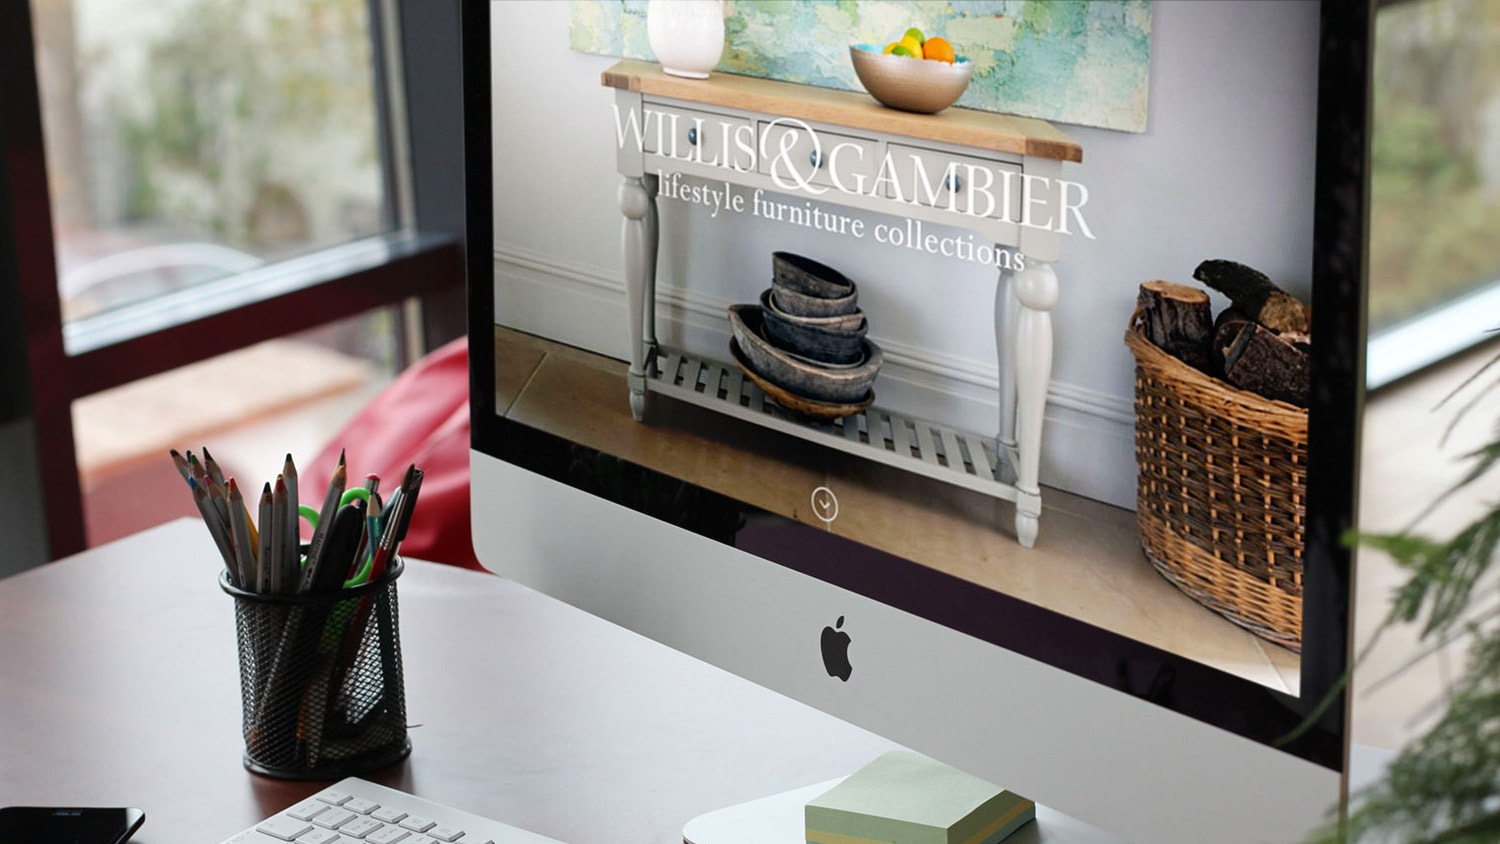 Close up of desktop displaying the Willis & Gambier website with a full bleed image of Willis & Gambier furniture